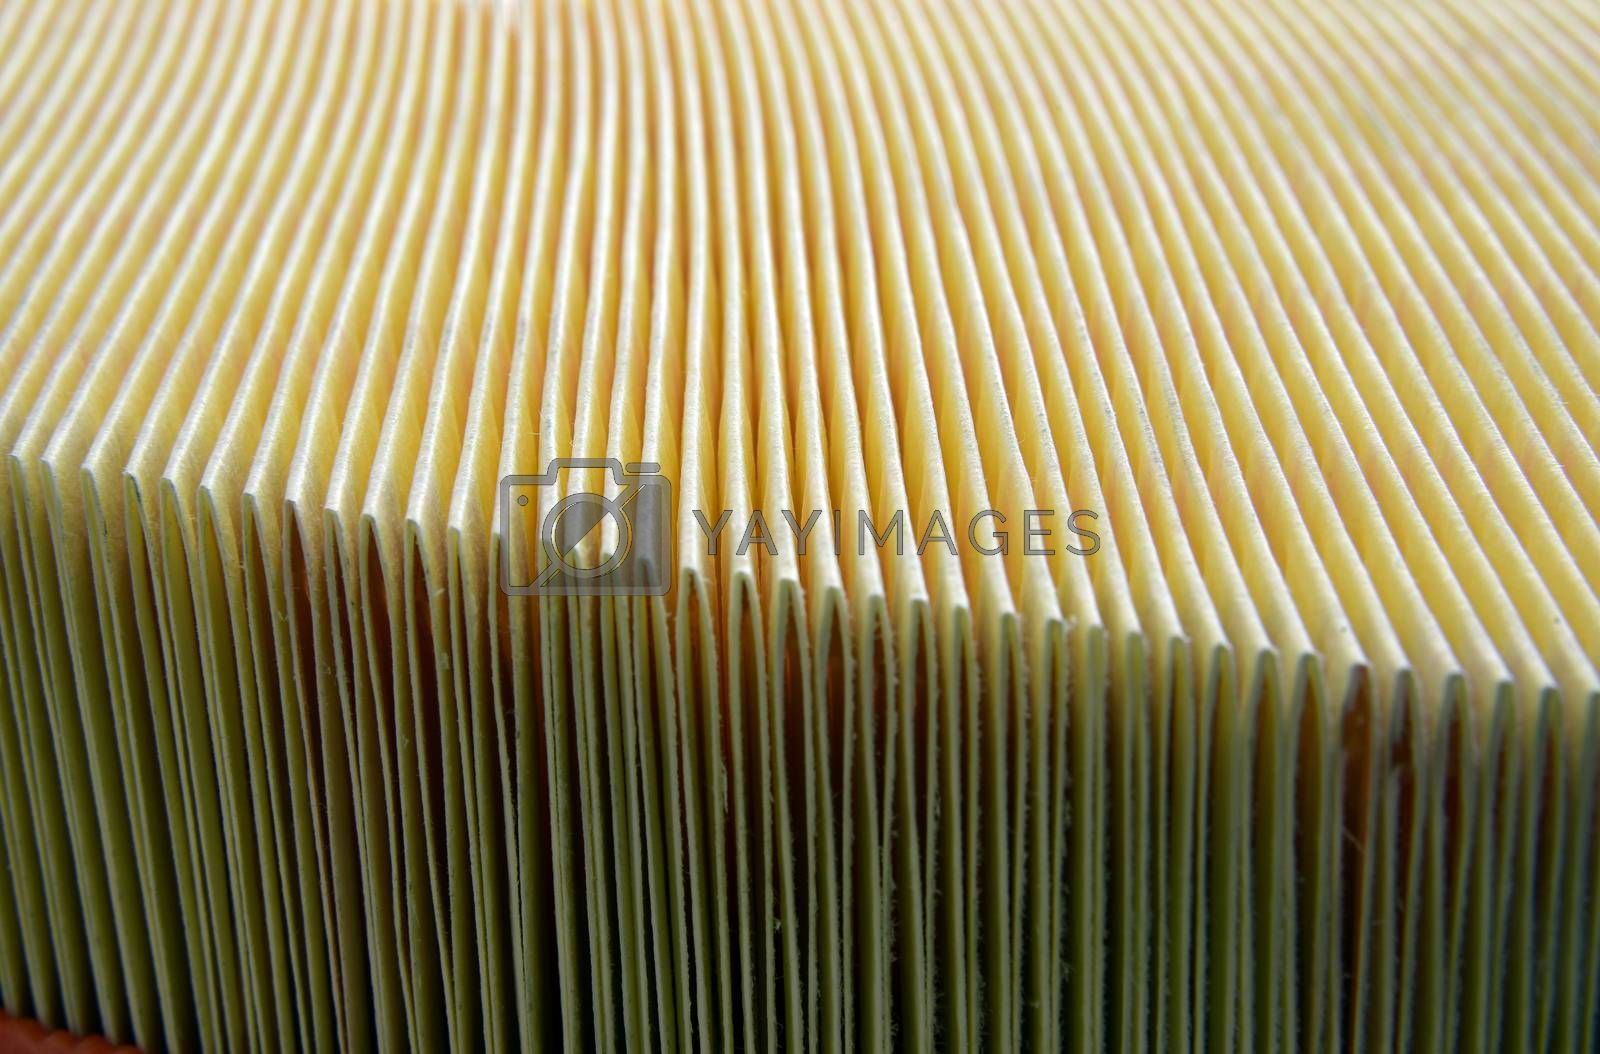 Royalty free image of Automotive air filter detail by aselsa